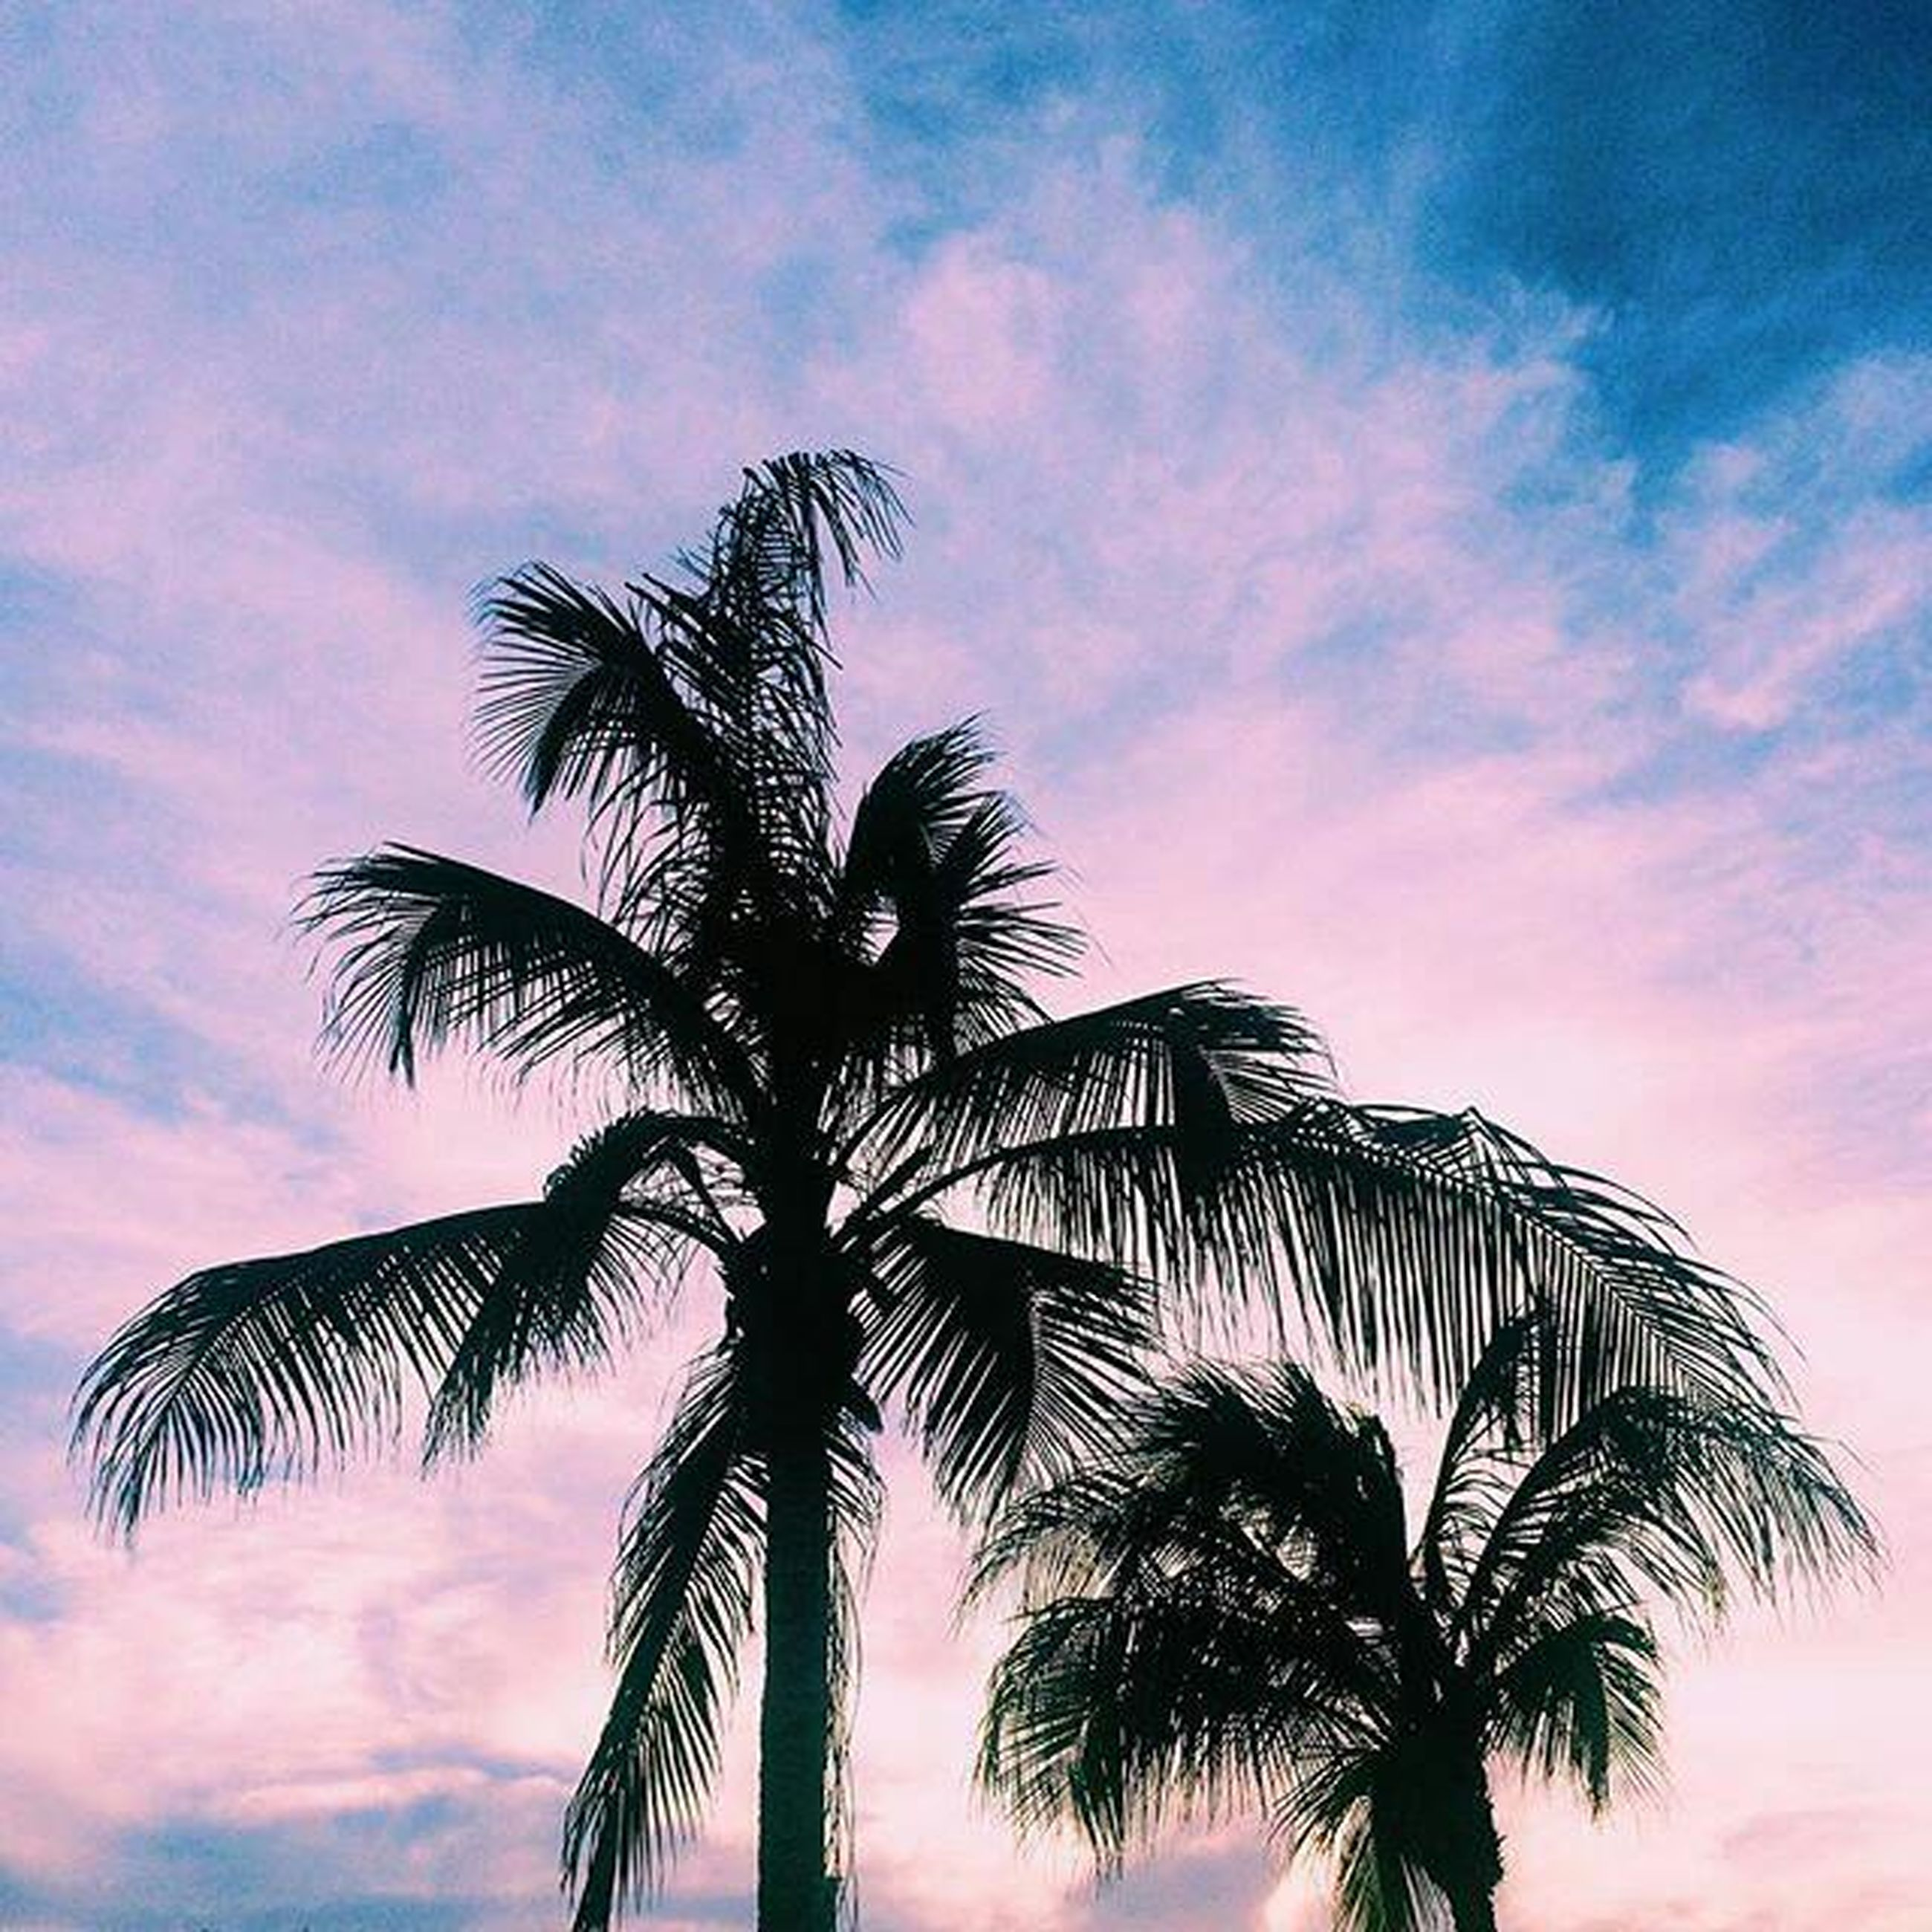 palm tree, tree, low angle view, sky, tree trunk, beauty in nature, scenics, silhouette, tropical climate, nature, sunset, tranquility, outdoors, cloud - sky, growth, summer, no people, day, blue, vacations